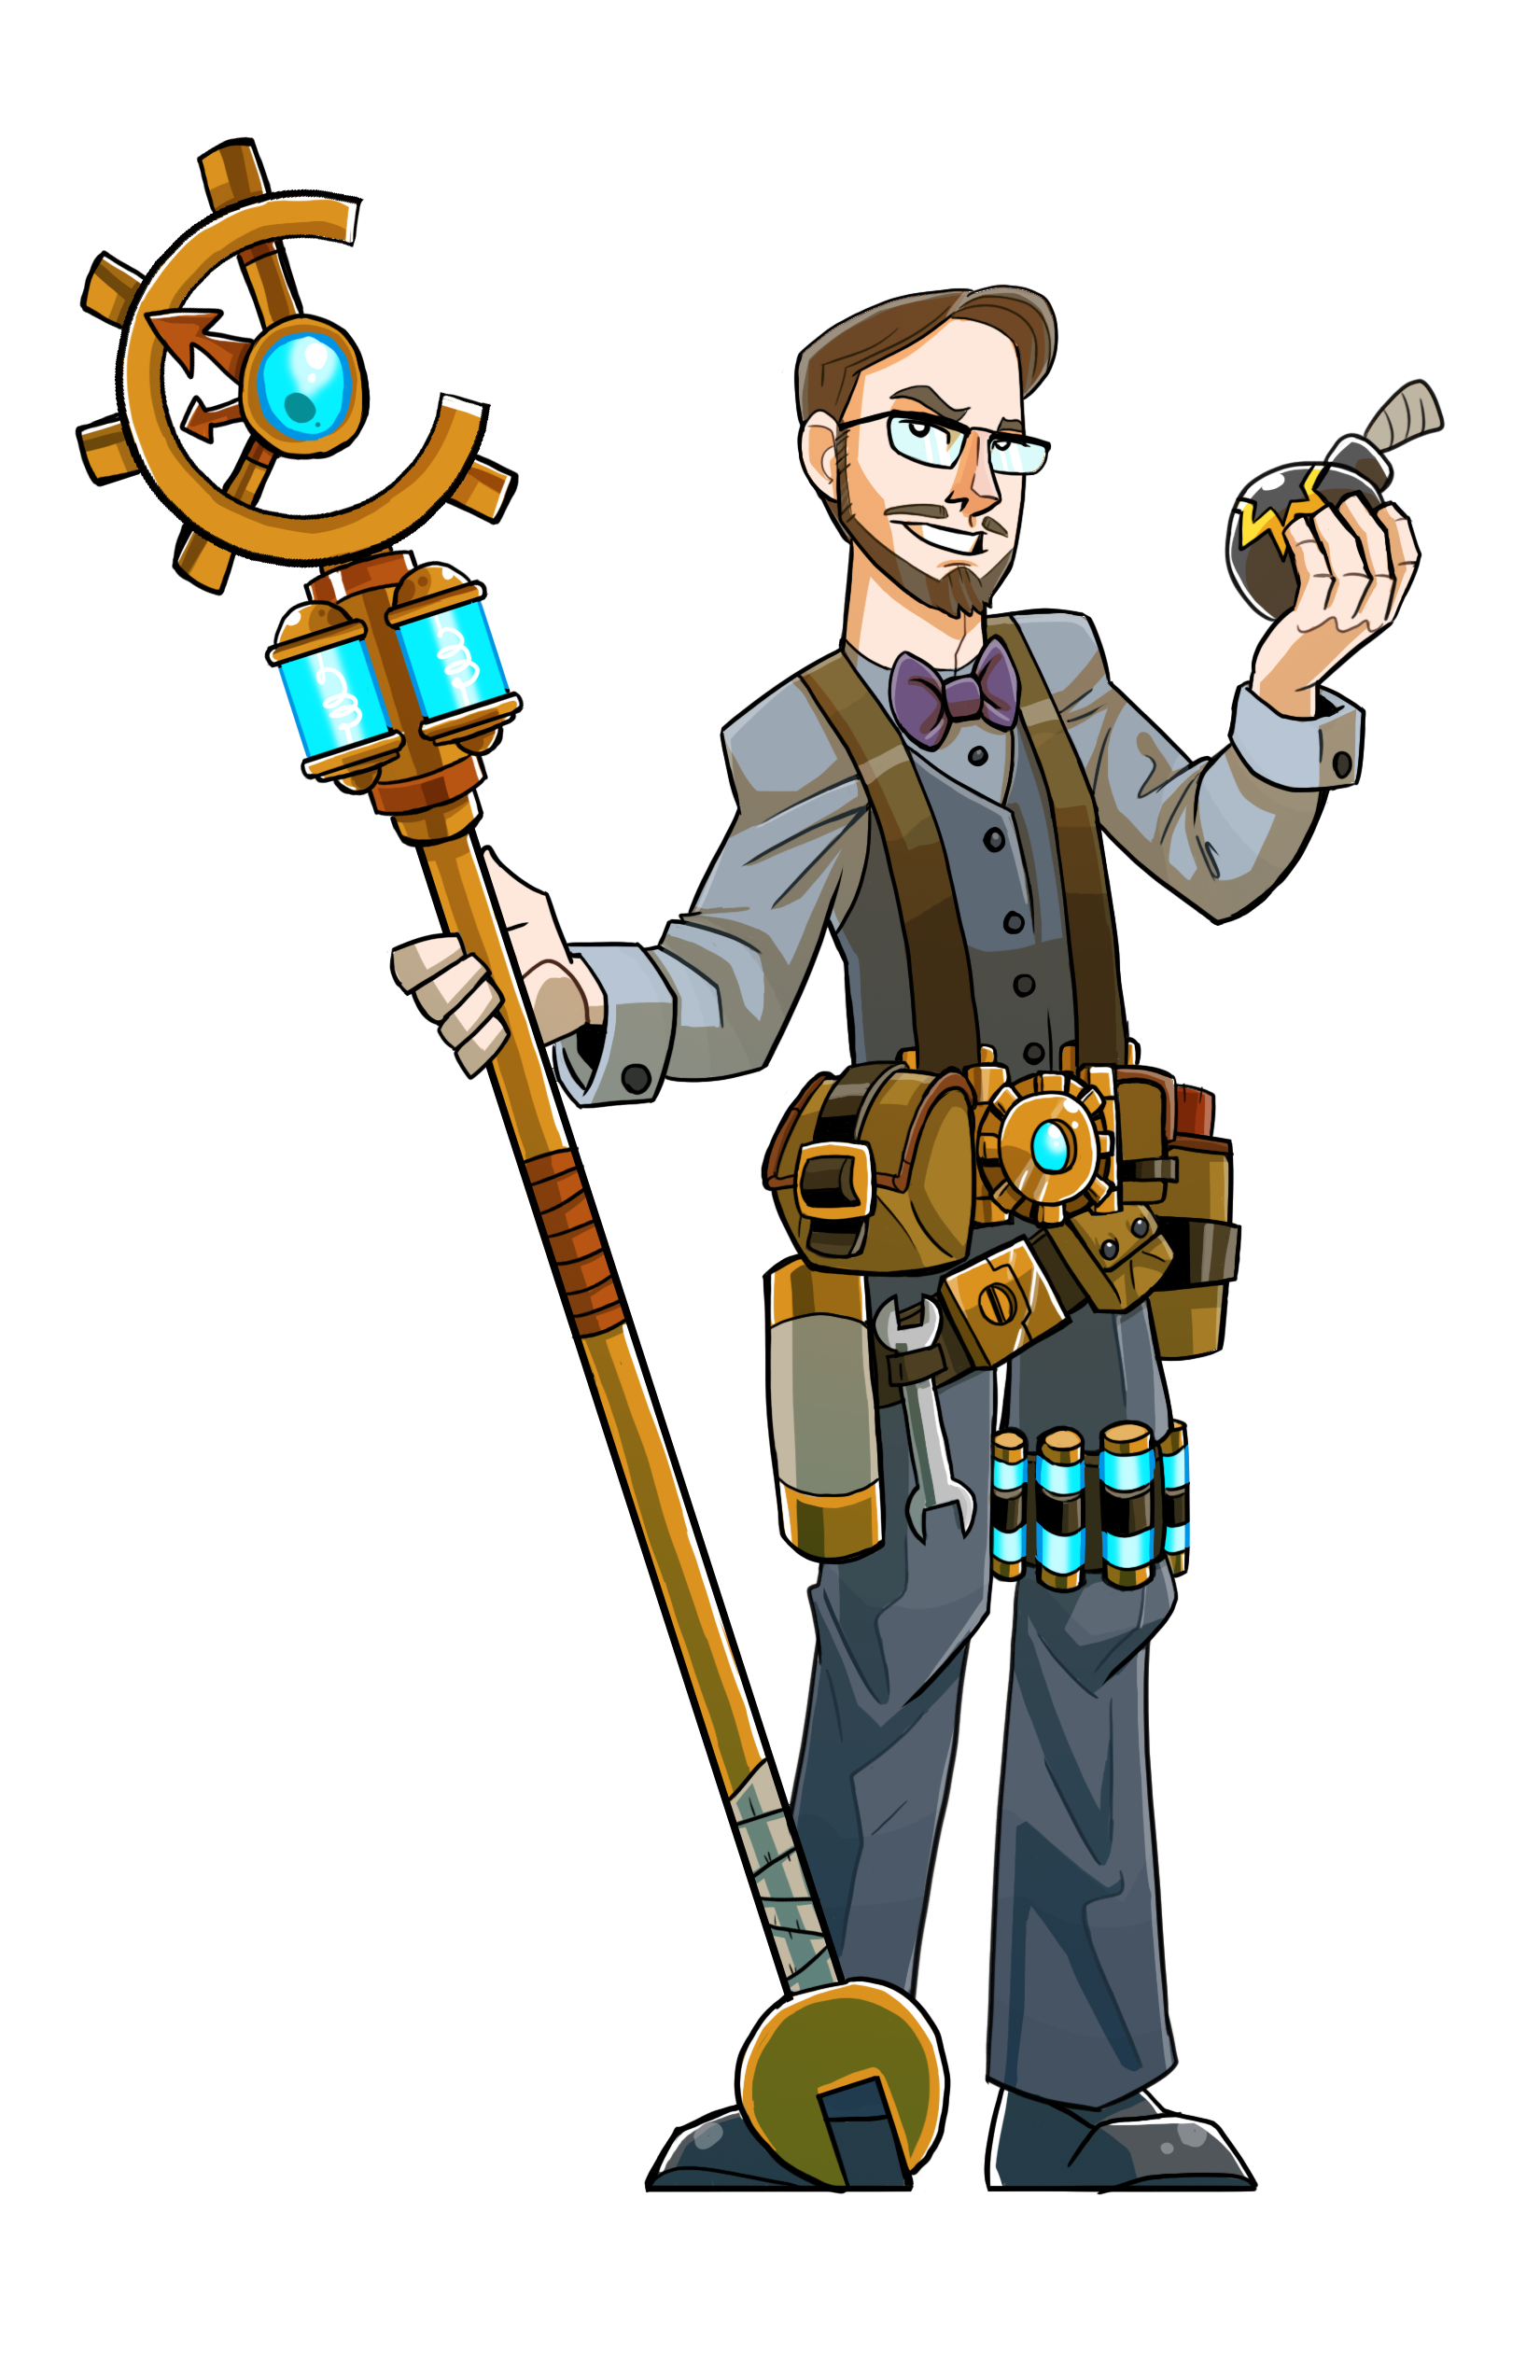 John Puh - The Craft Master - This is John Puh, the 5e Version of me, he is included on my business card and sent with each order.Grab John Puh's Character sheet here to add him into any of your games!He was Illustrated as a custom commission by the artist of TrashMobMinis and you can follow them on twitter @TrashMobMinisBig thanks to MorePurpleMoreBetter (@BetterOfPurple on twitter,) for allowing me to share John's character sheet with anyone who wants to include him in their game. If you like the character sheet and want to get your own and get updates on it, please support the designer at https://www.patreon.com/morepurplemorebetter